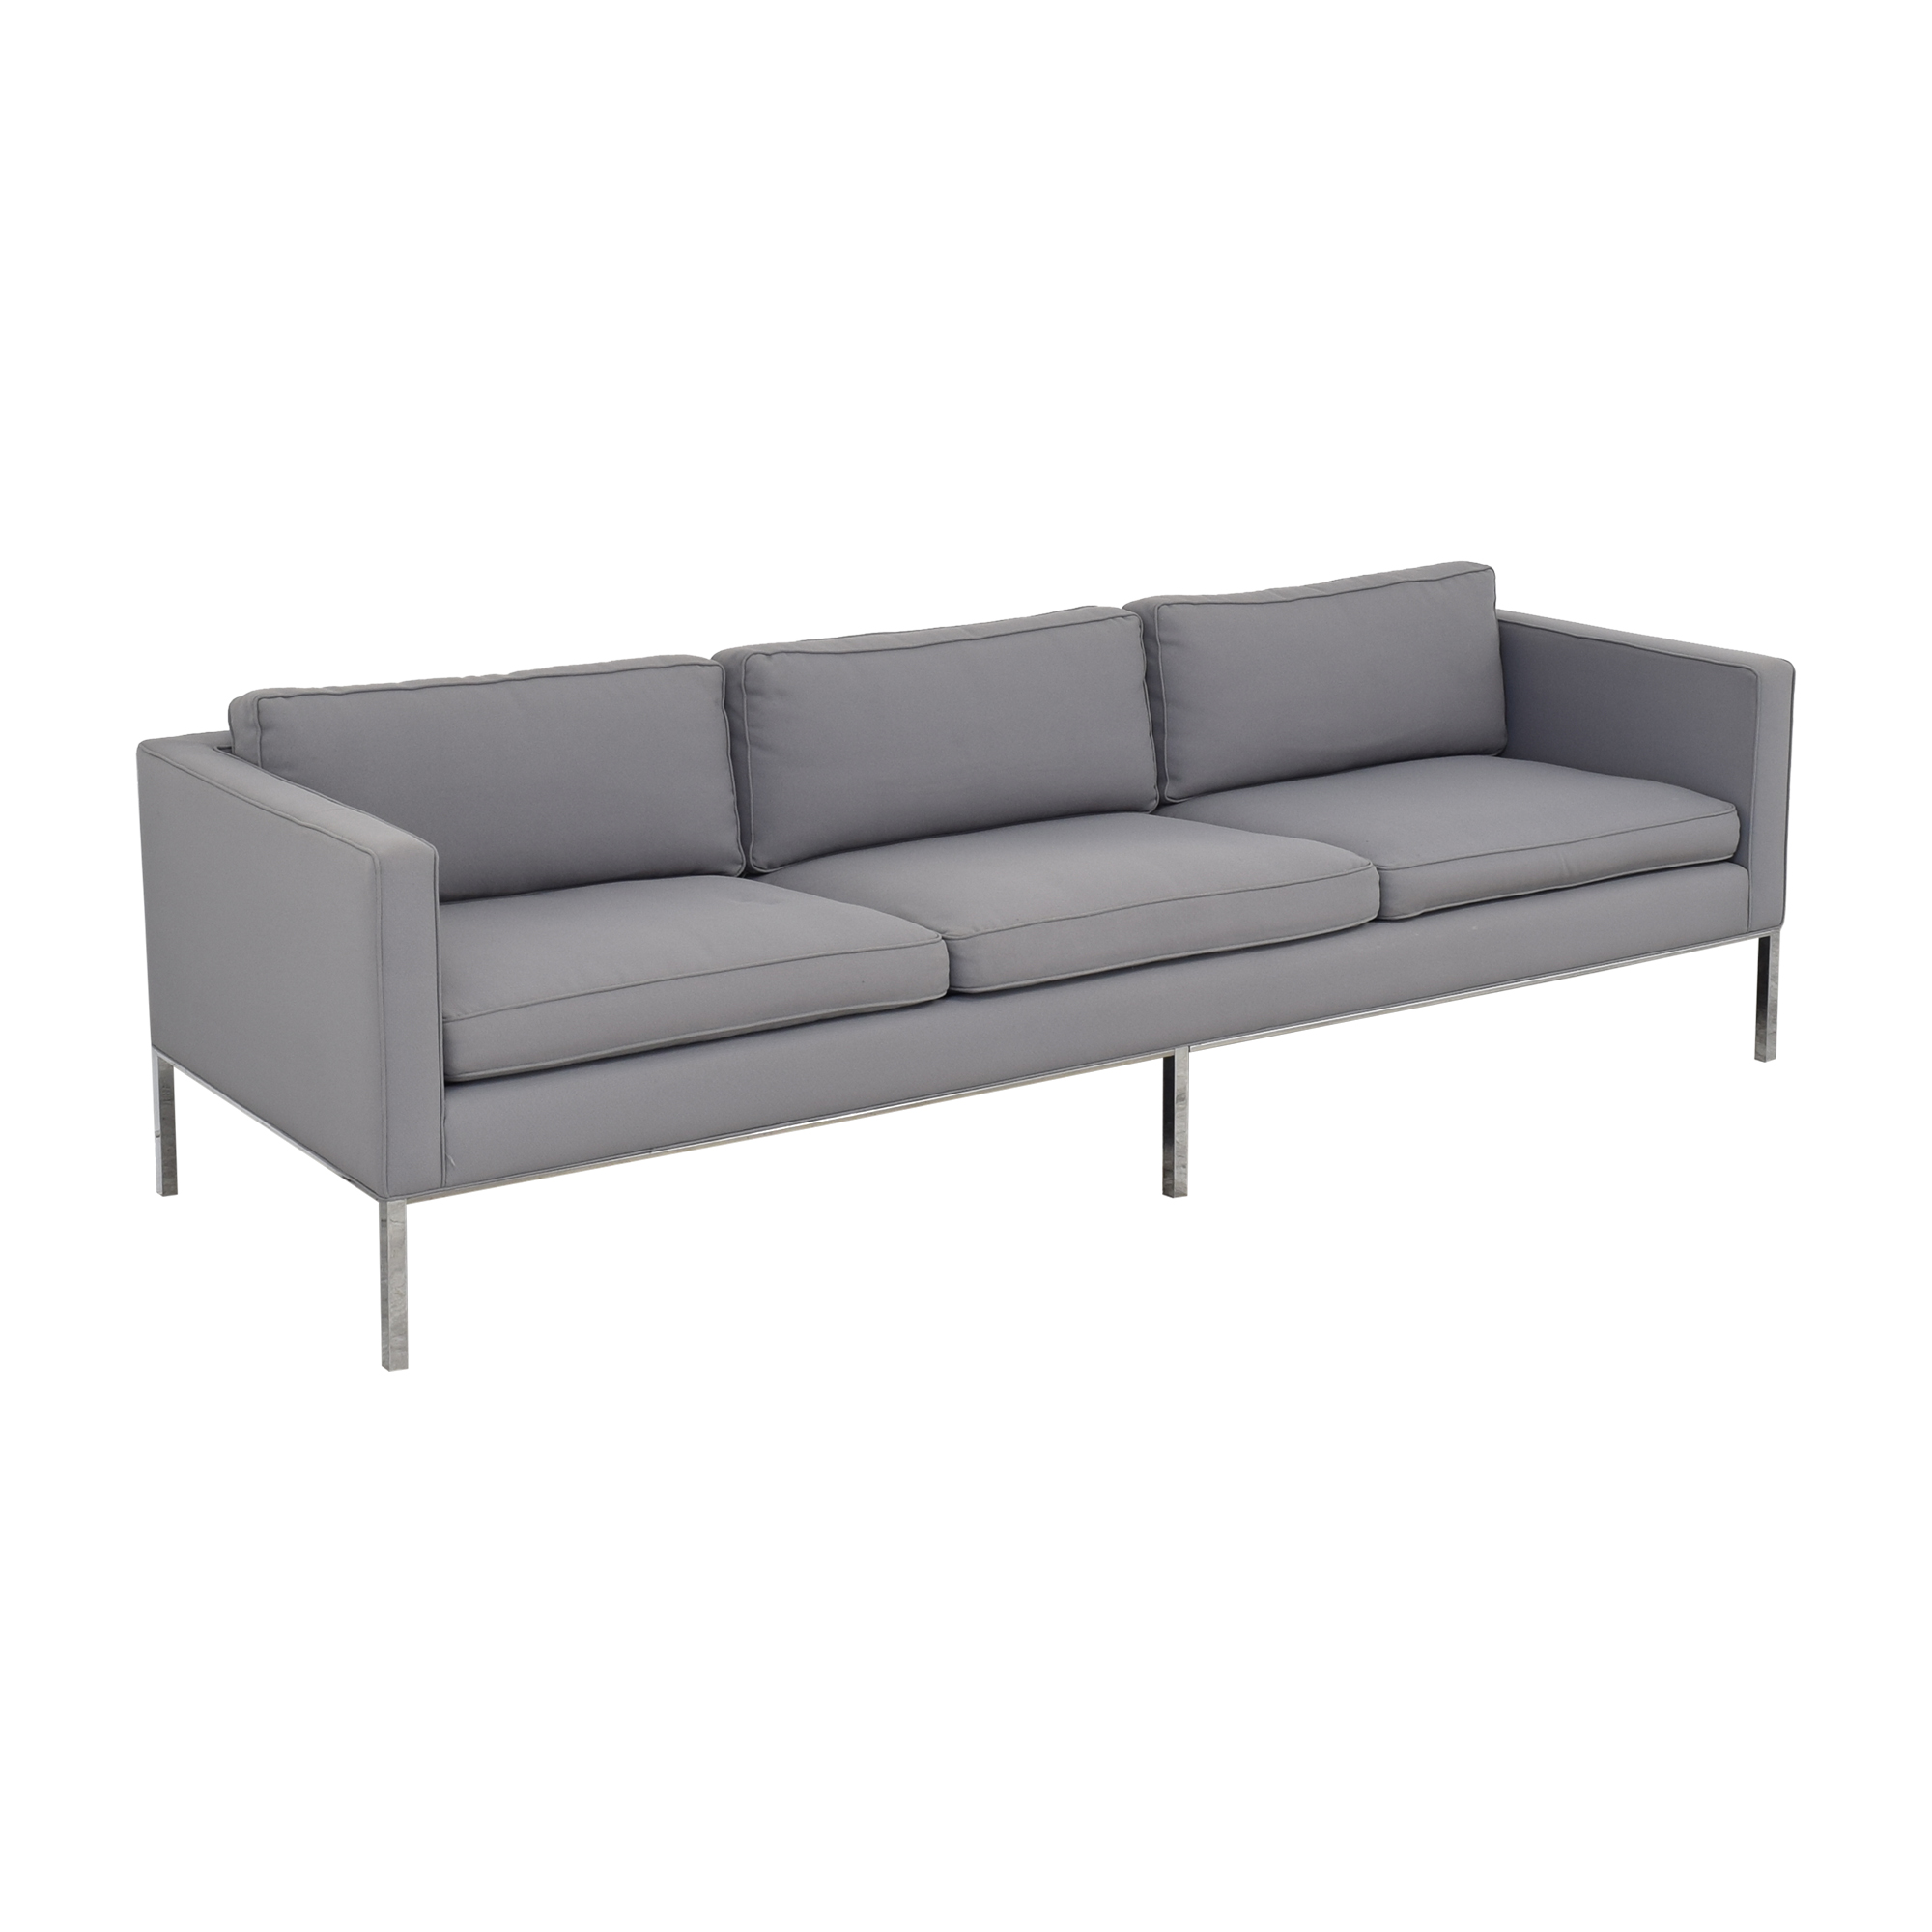 Artifort Artifort 905 3 Seater Sofa with 905 Ottoman grey